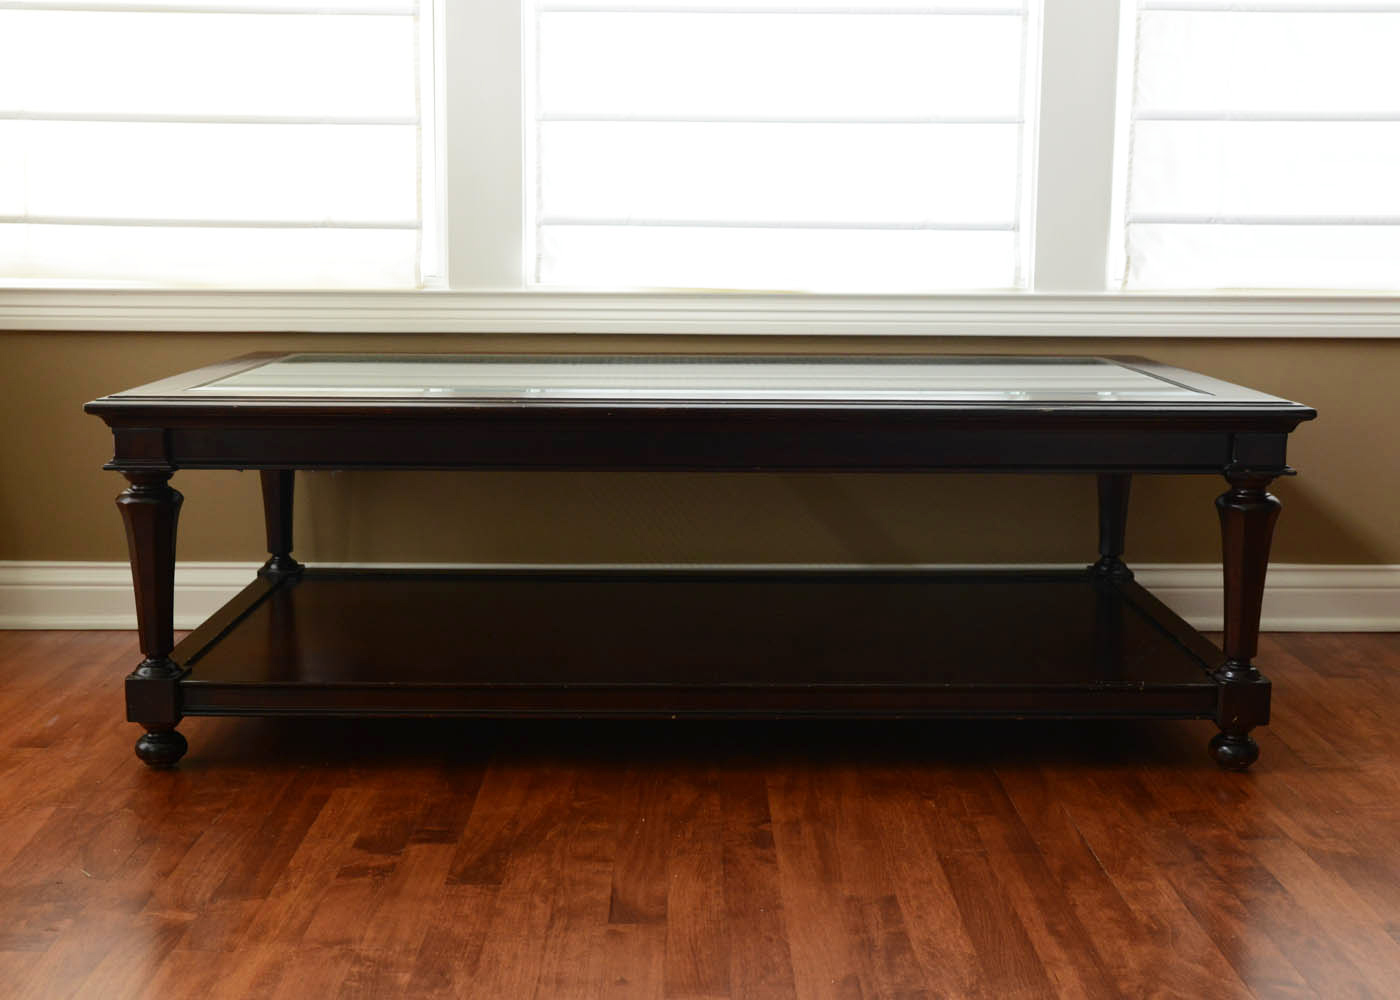 Restoration hardware bristish cane occasional collection coffee table